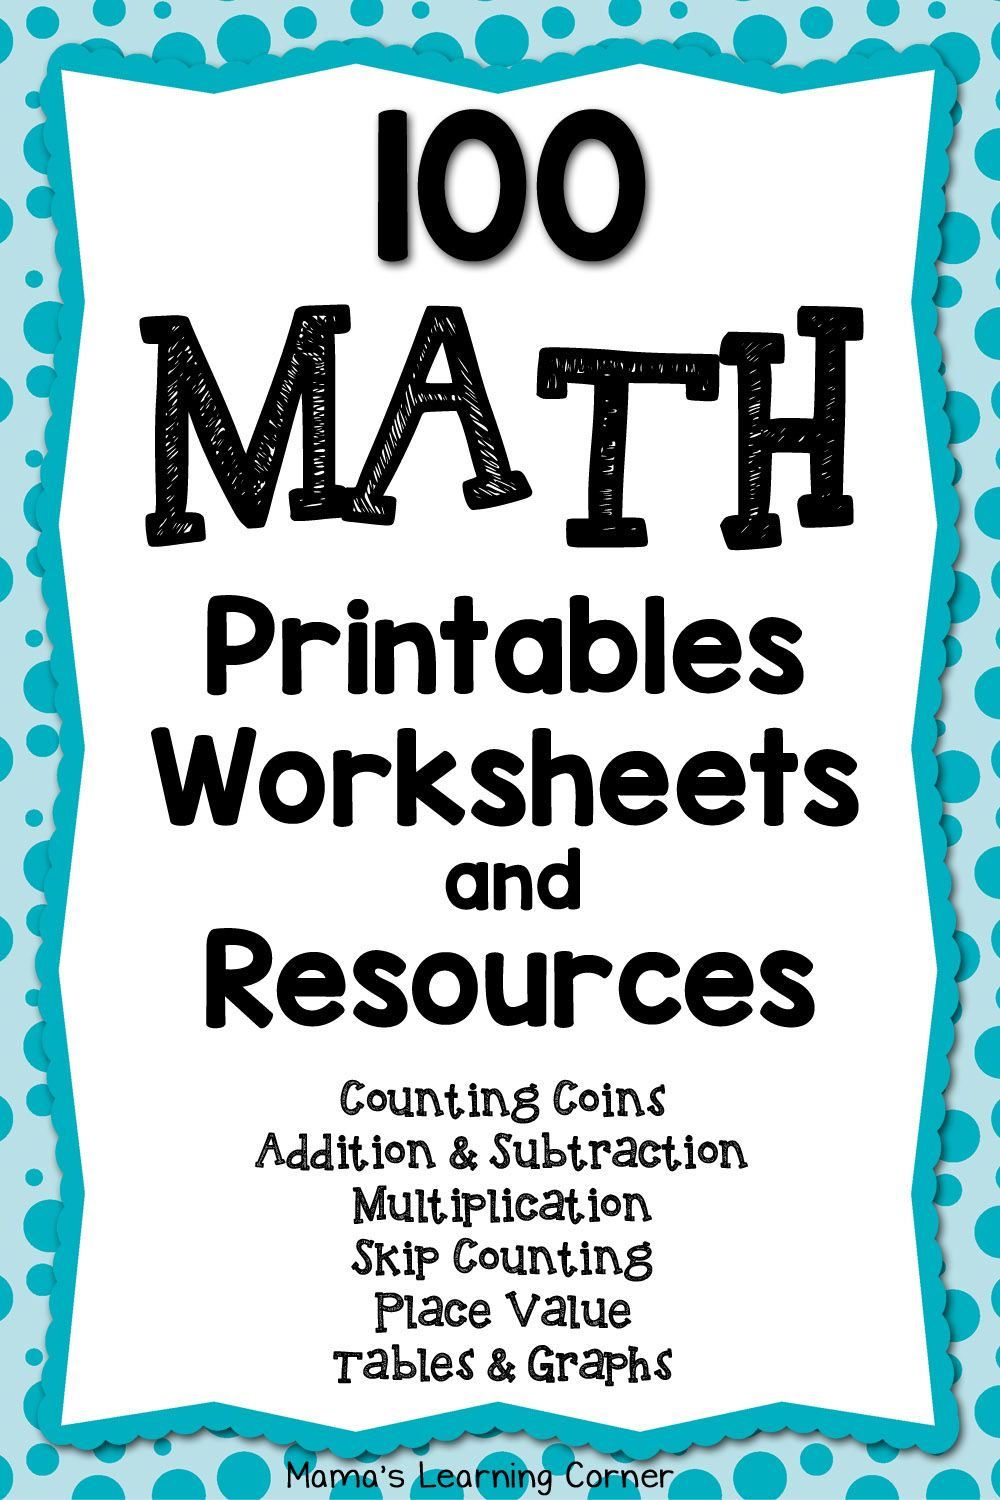 Homeschooling Resources 46 FREE Homeschool Math Resources – Elementary Worksheets About Math